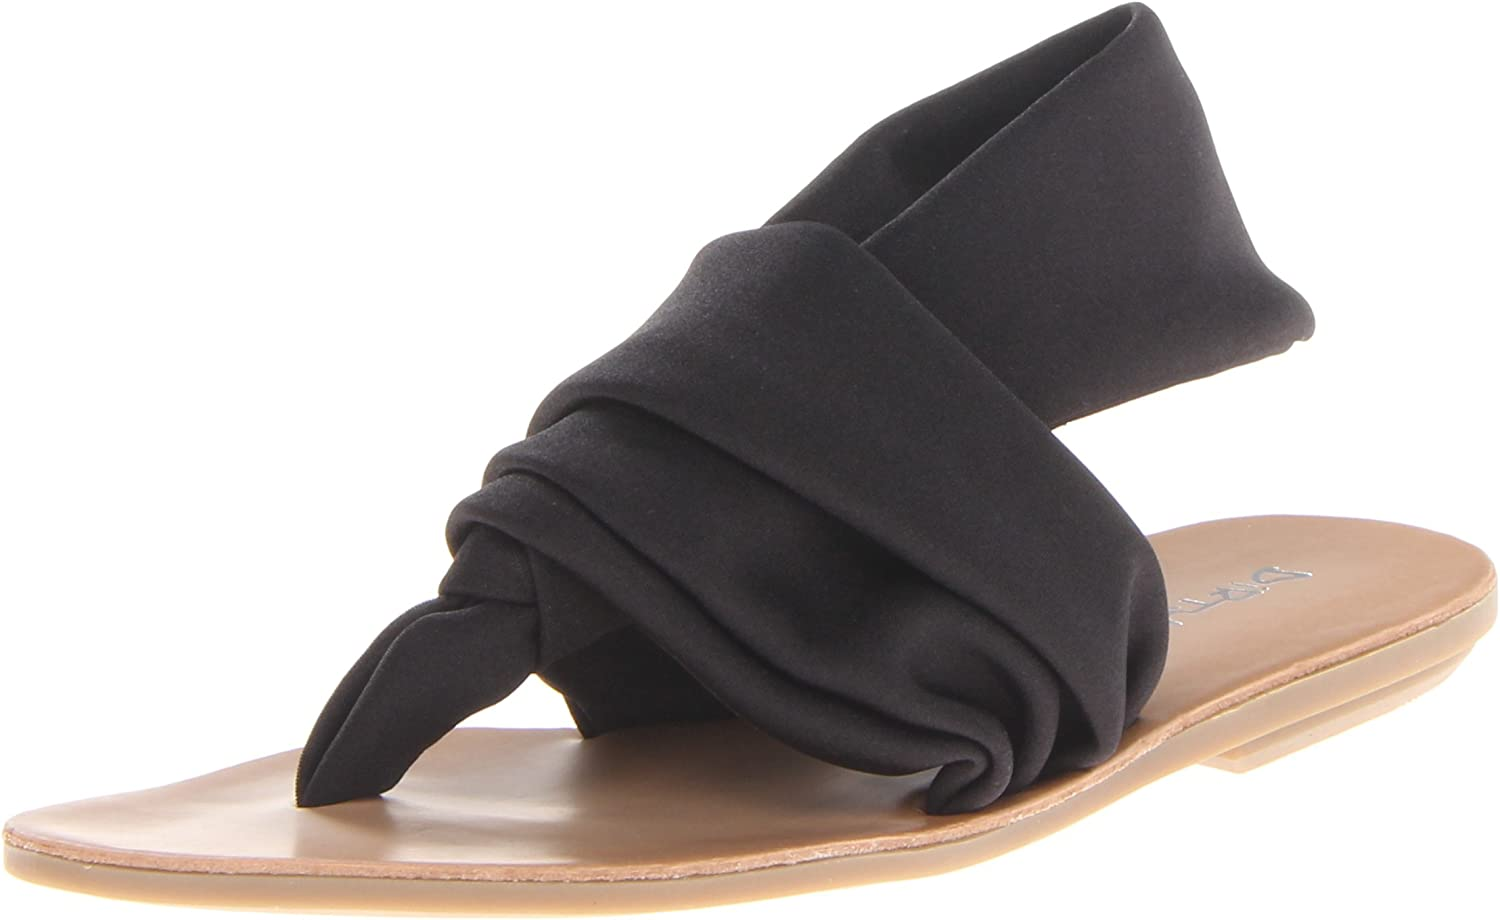 Dirty Laundry by Chinese Laundry Women's Beebop Flat Sandal